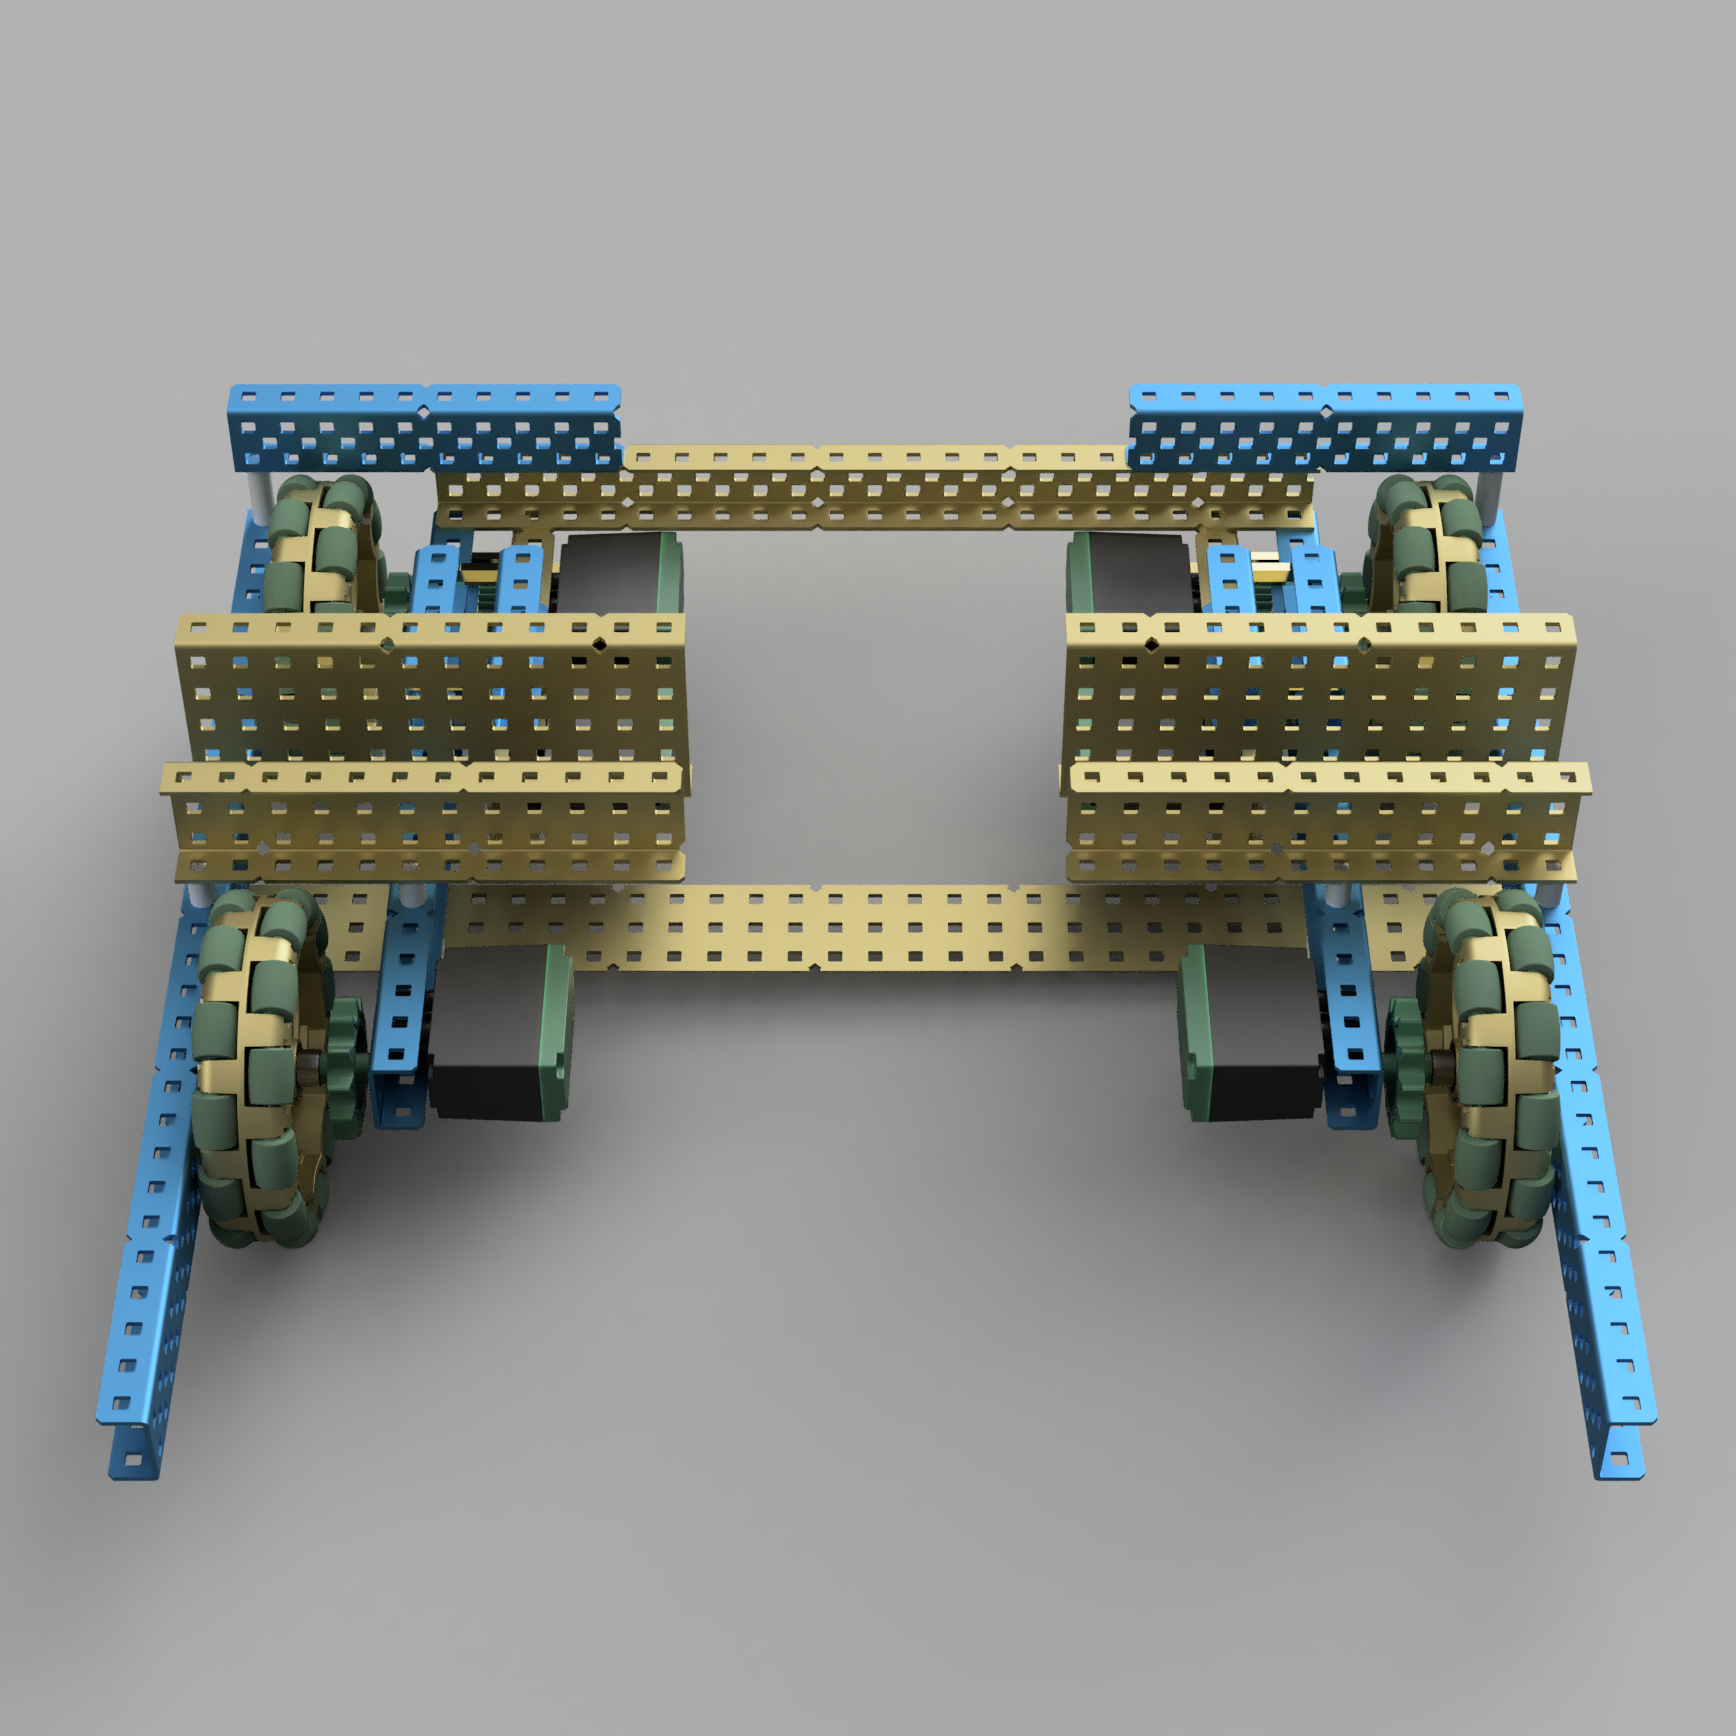 Chassis%20Render%201